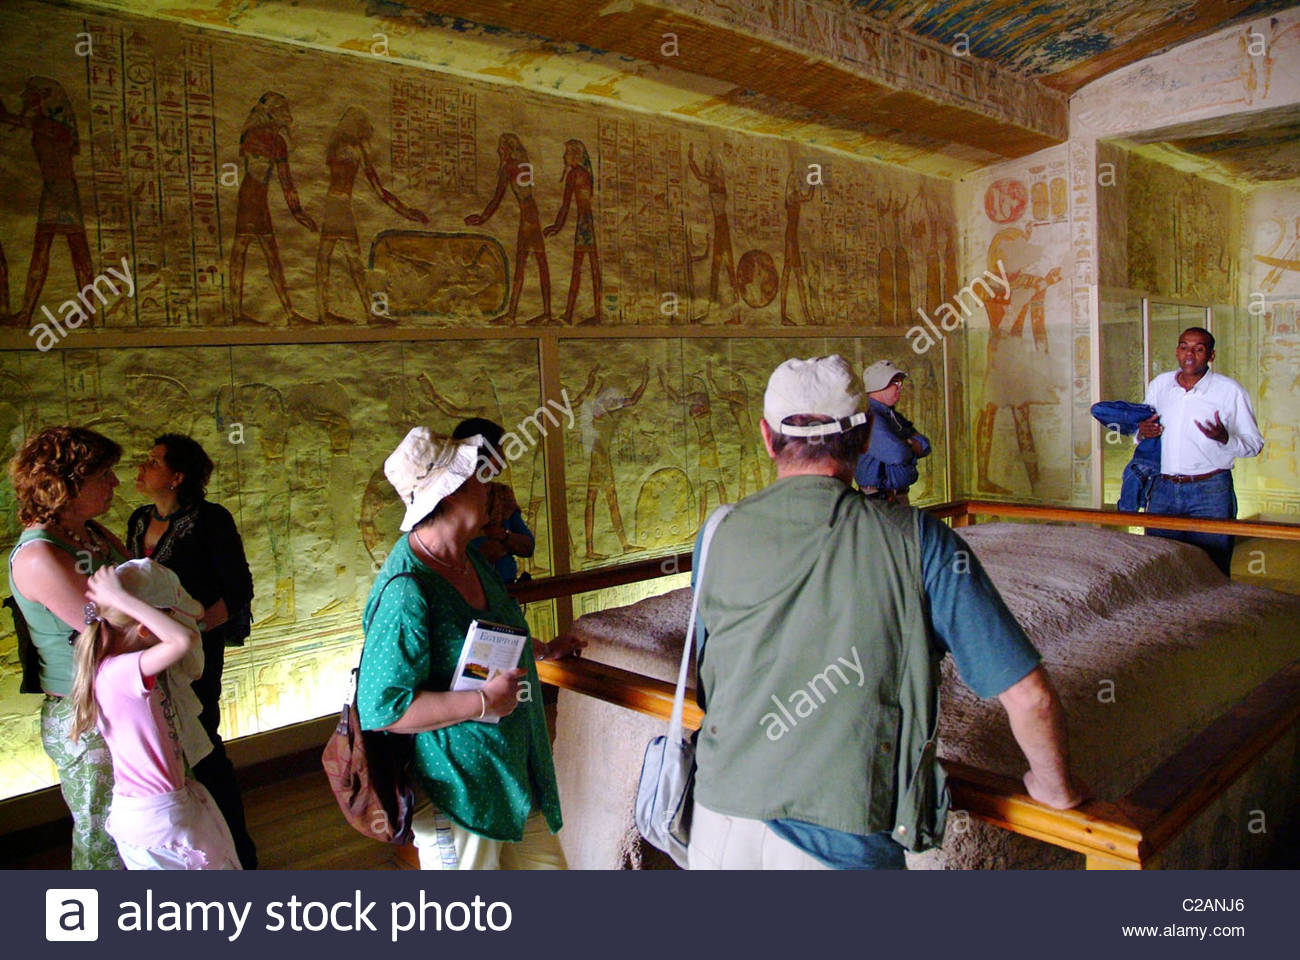 Tourists at the Tomb of Ramesses IV in Luxor. - Stock Image